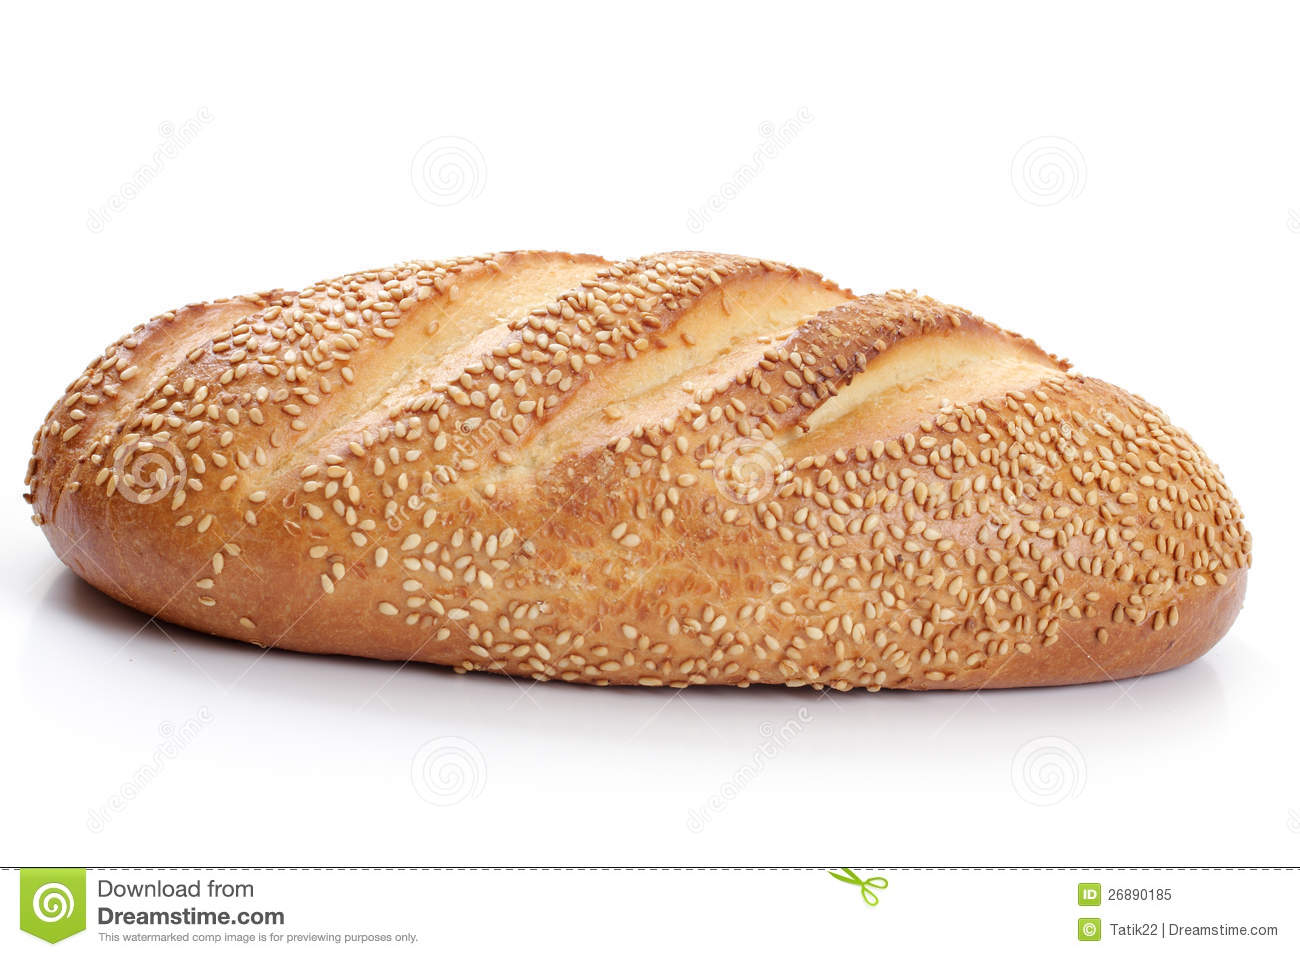 Loaf of white bread with sesame seeds on a white background.